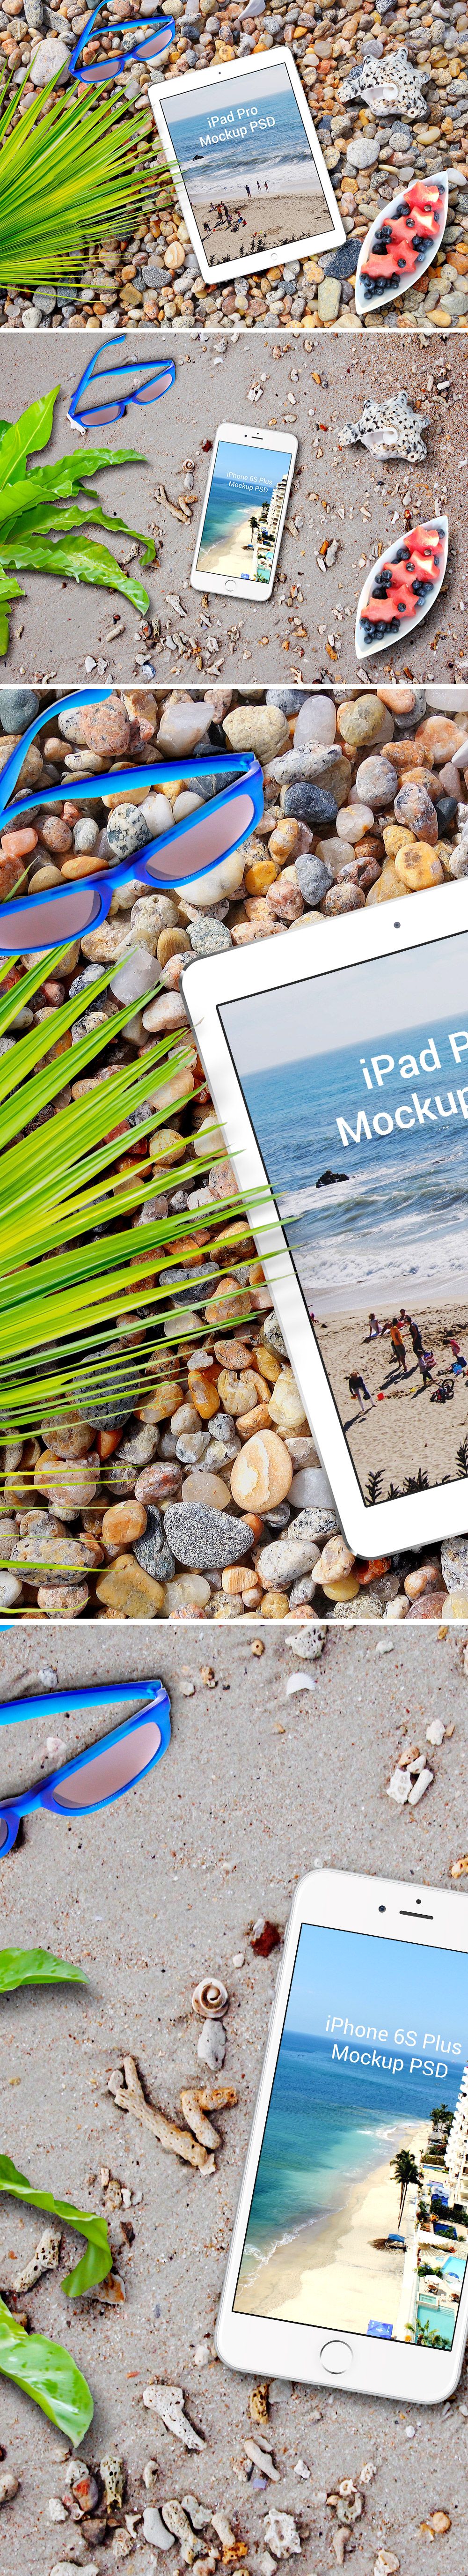 iPhone 6s Plus & iPad Pro Beach Mockup